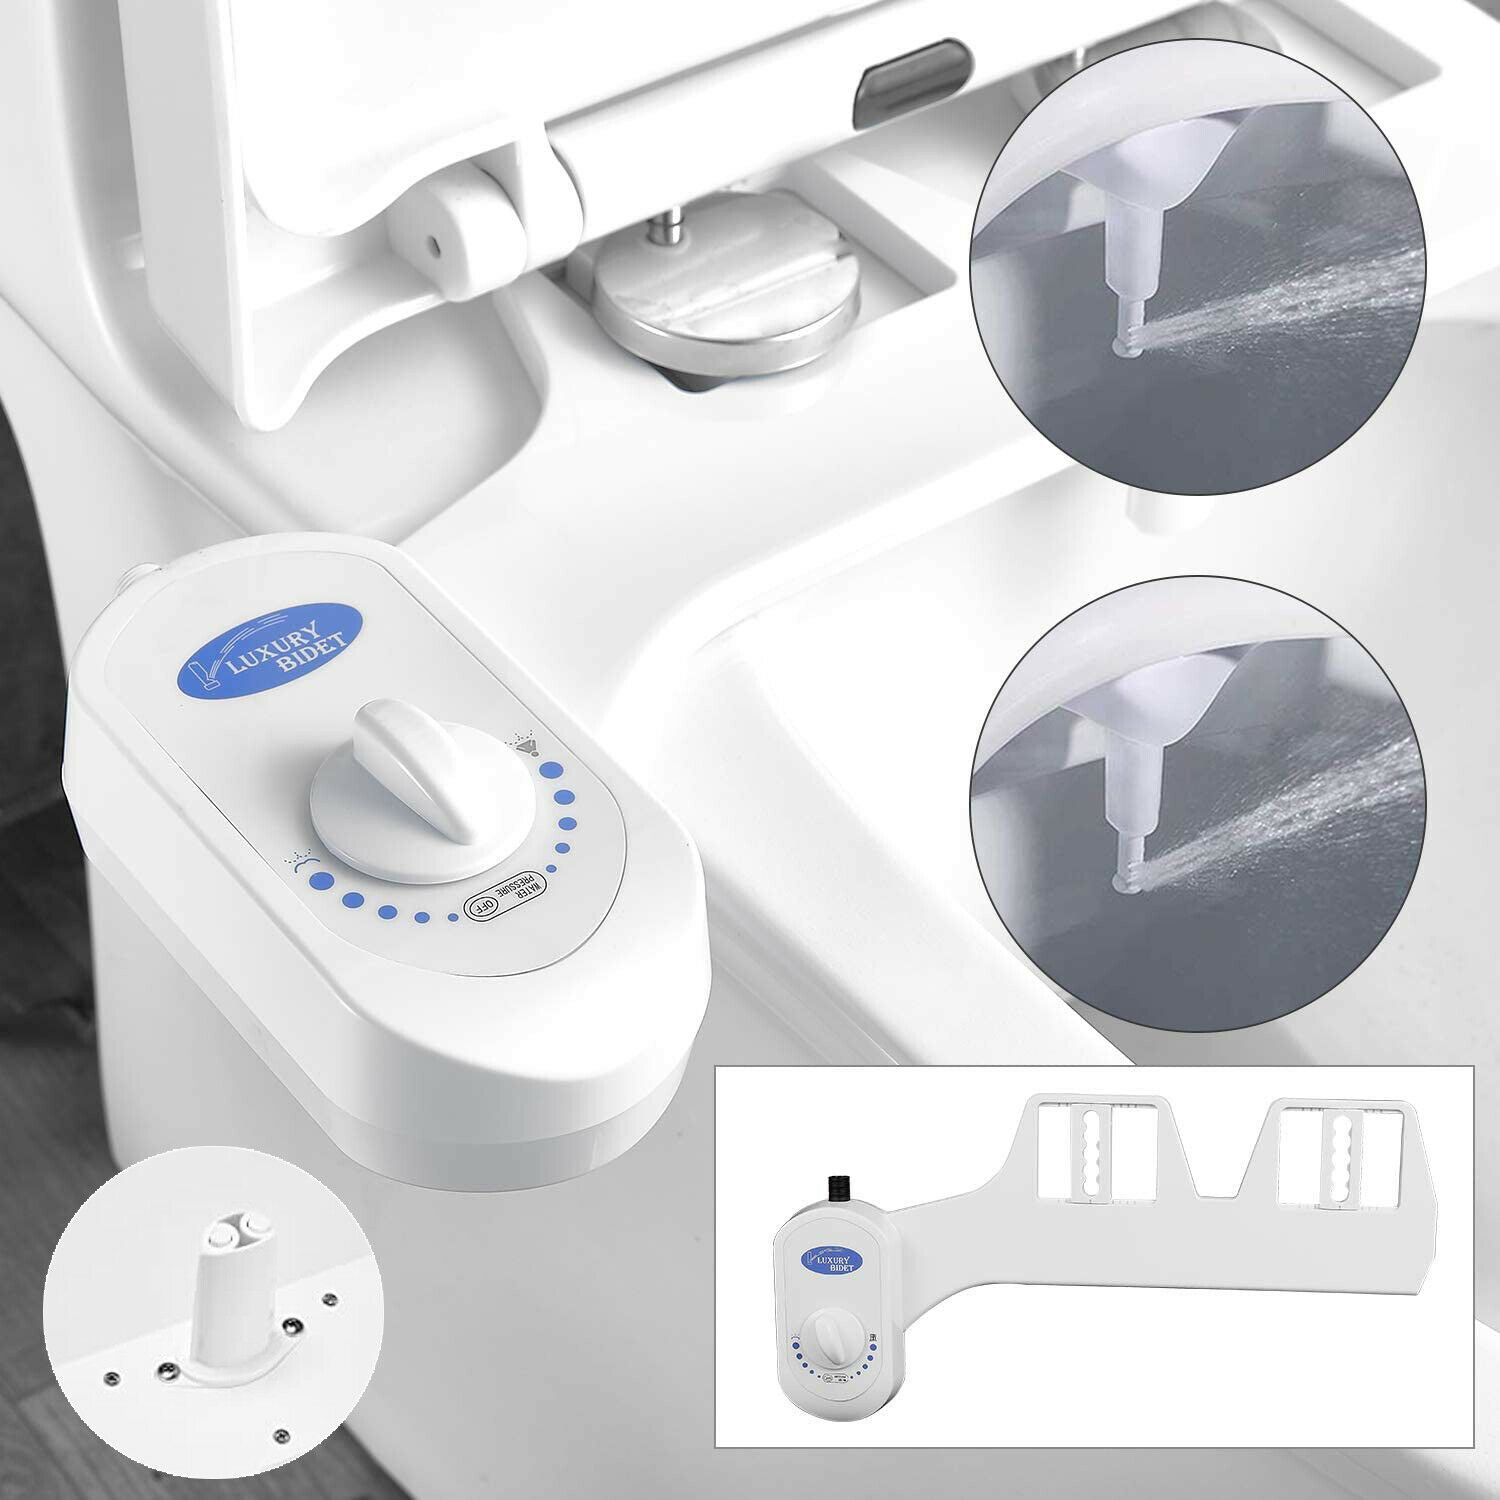 Us New Dual Women Nozzle Water Spray Non Electric Bidet Toilet Seat Attachment For Sale Online